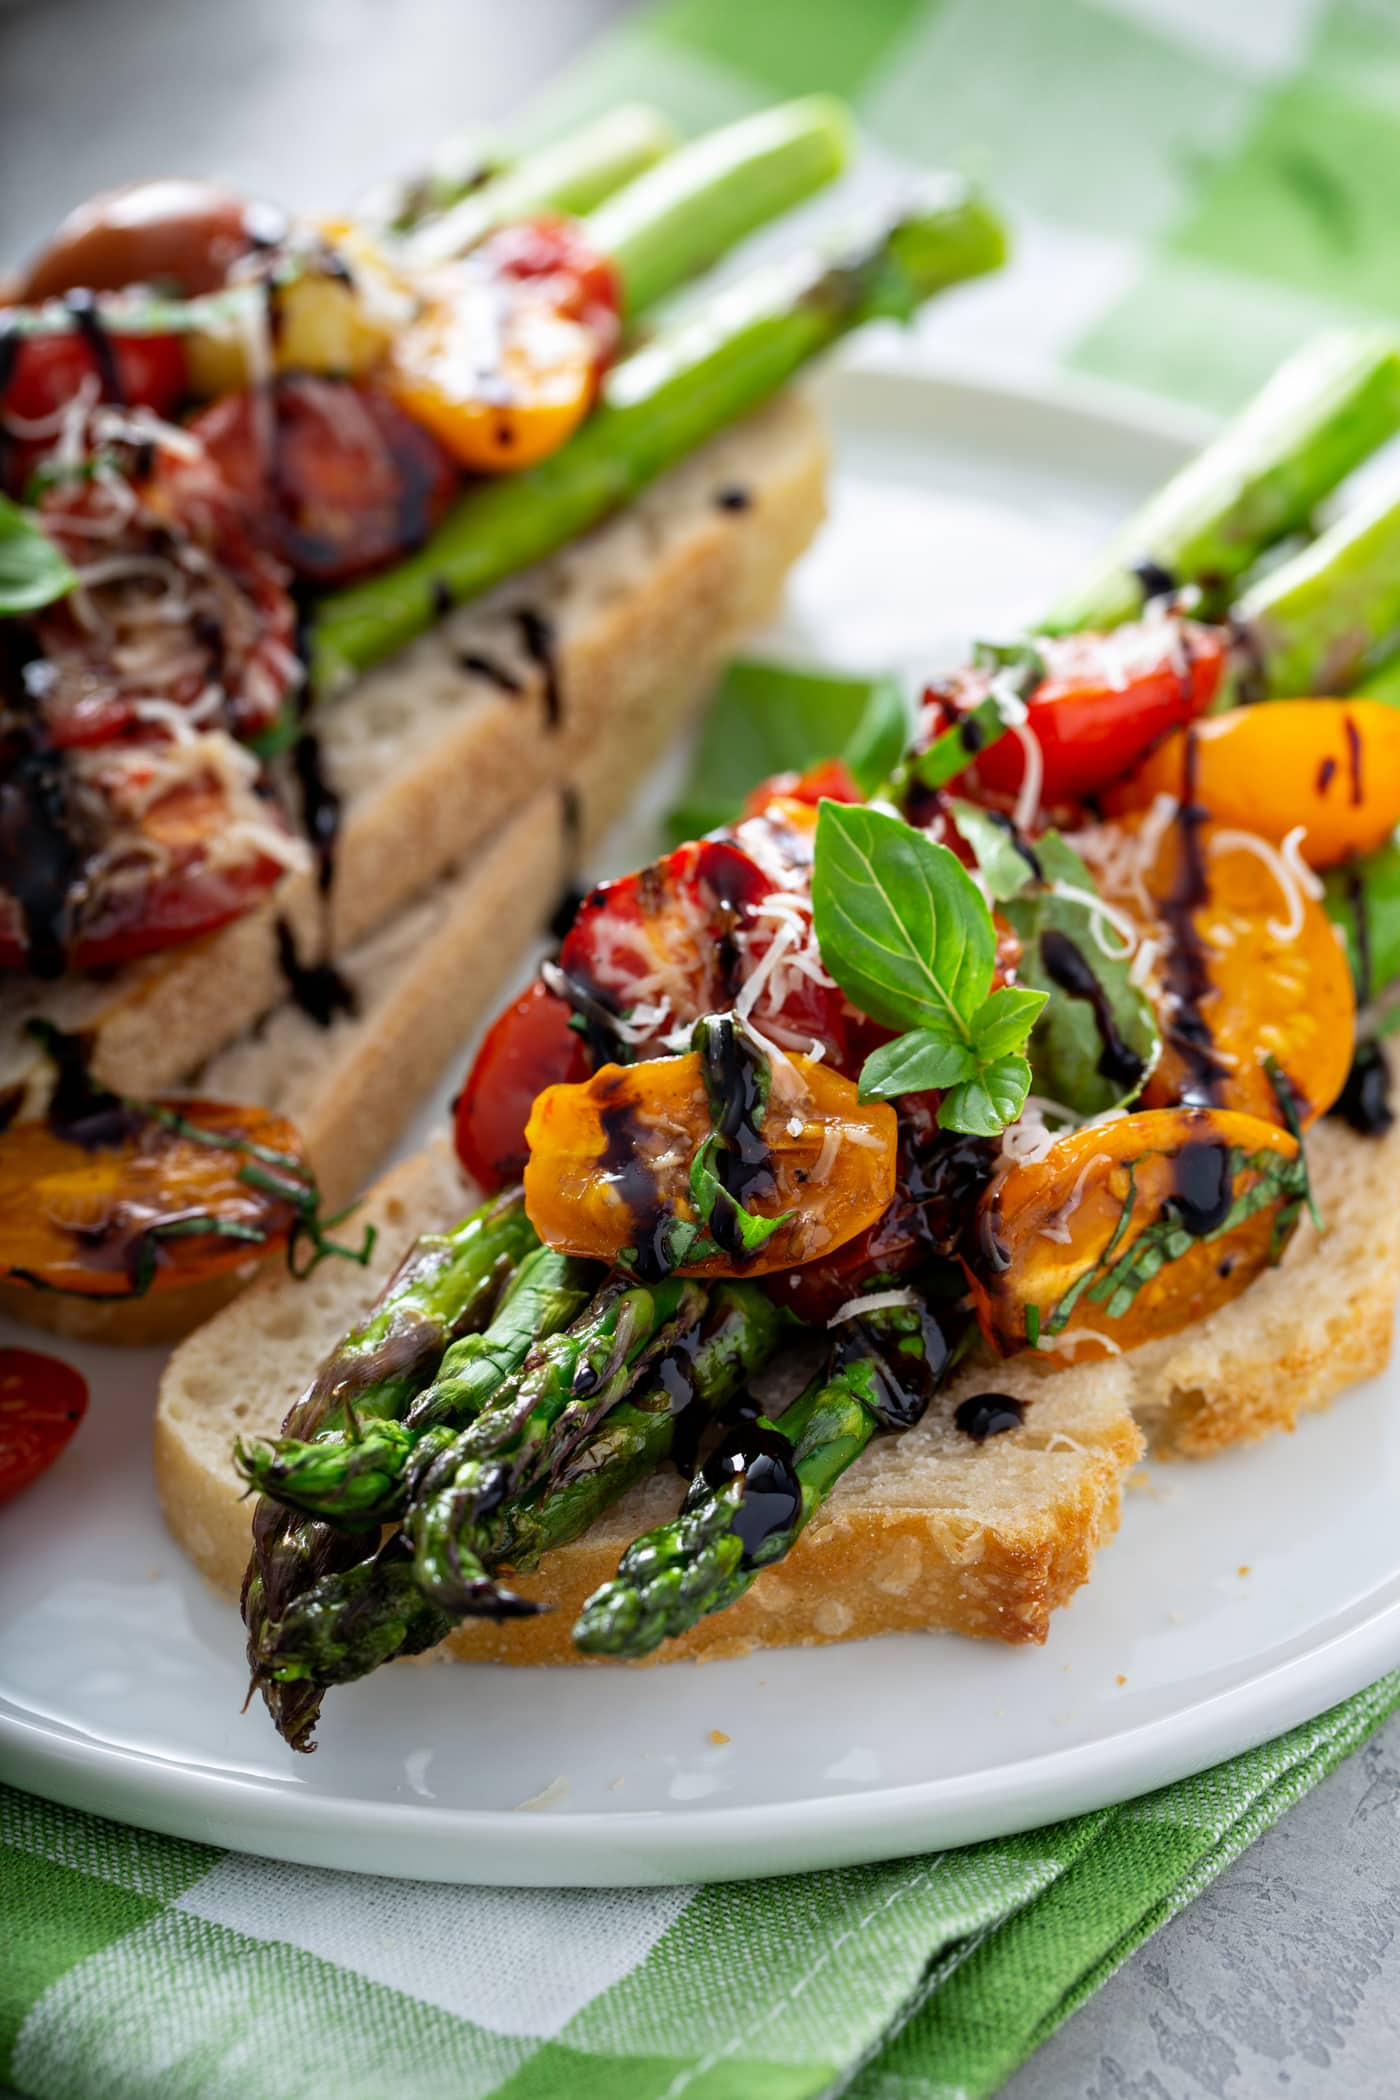 A serving of balsamic glazed roasted tomatoes and asparagus on a slice of bread. the roasted tomatoes and asparagus are drizzled with balsamic glaze and sprinkled with grated Parmesan cheese. There is another serving on two slices of bread in the background.